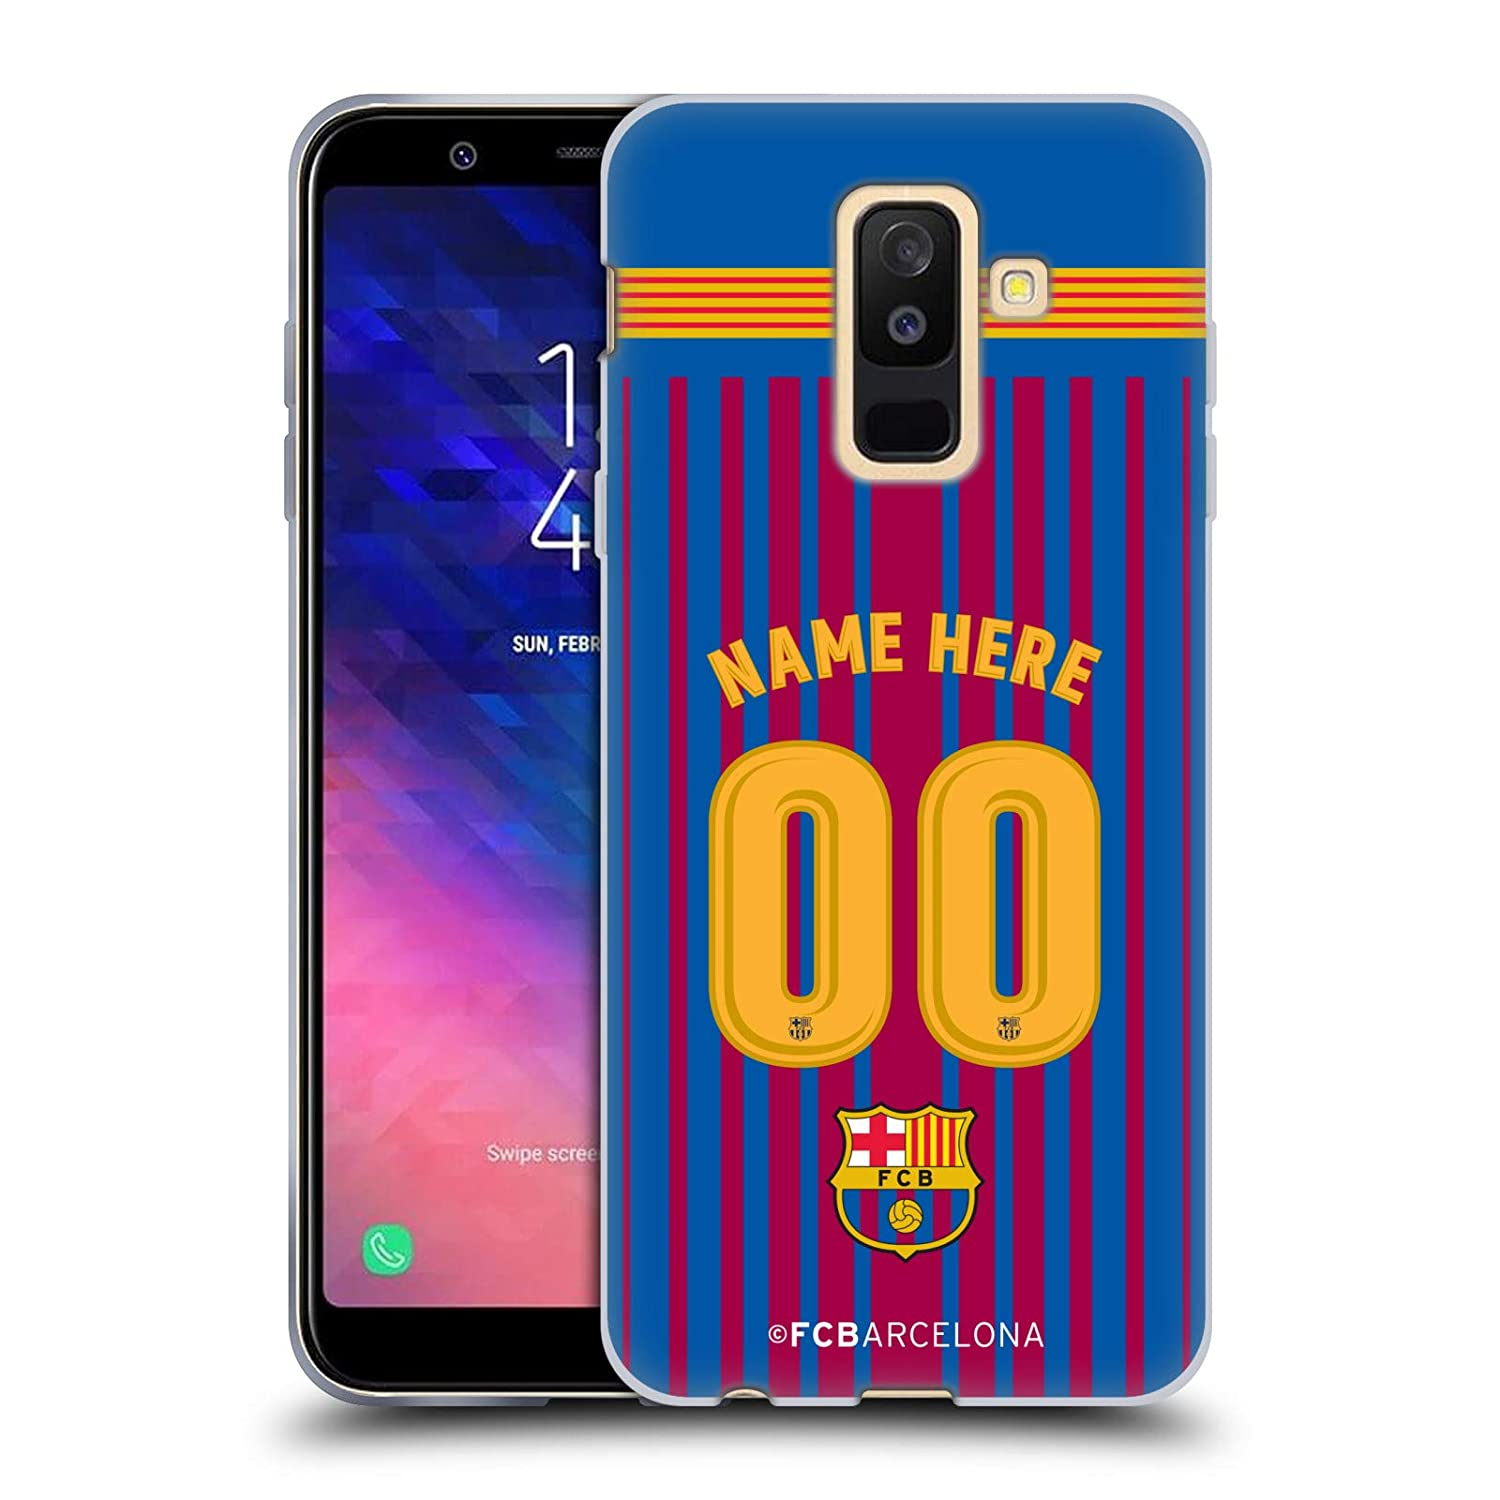 76ccf333e71 Amazon.com  Custom Customized Personalized FC Barcelona Third 2017 18 Kit  Soft Gel Case for Samsung Galaxy A6 Plus (2018)  Cell Phones   Accessories